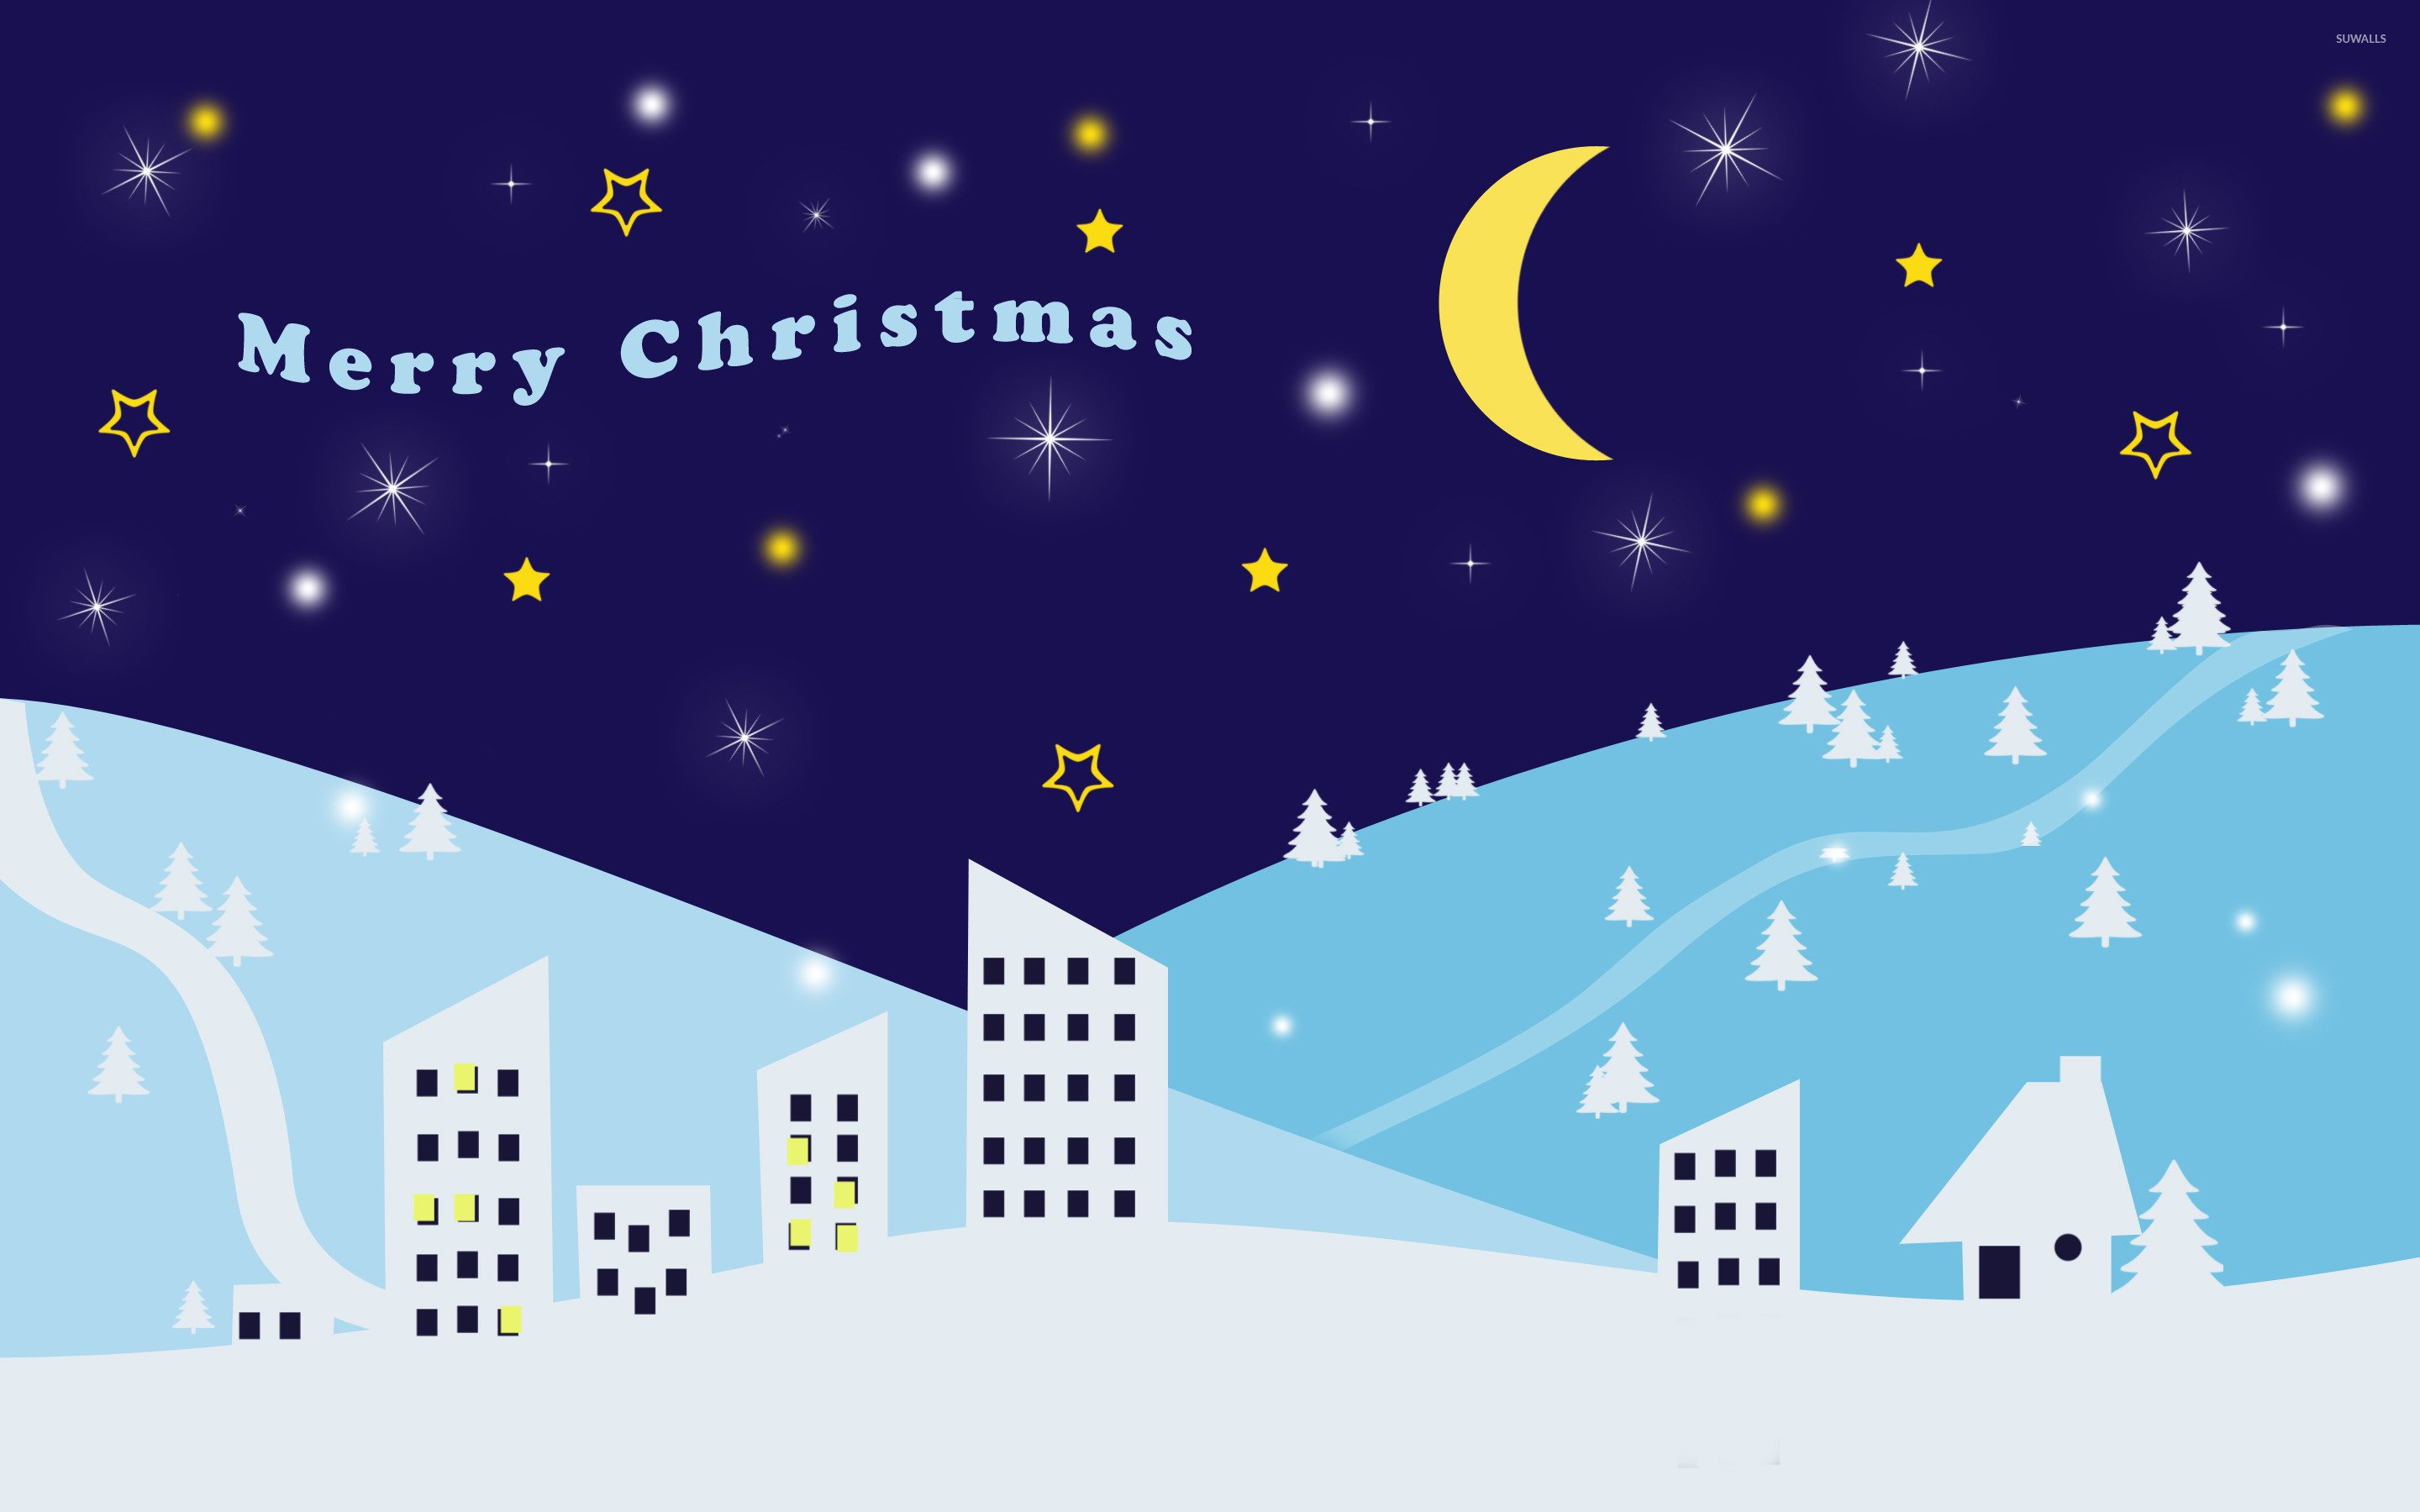 Christmas Card Messages & Wishes